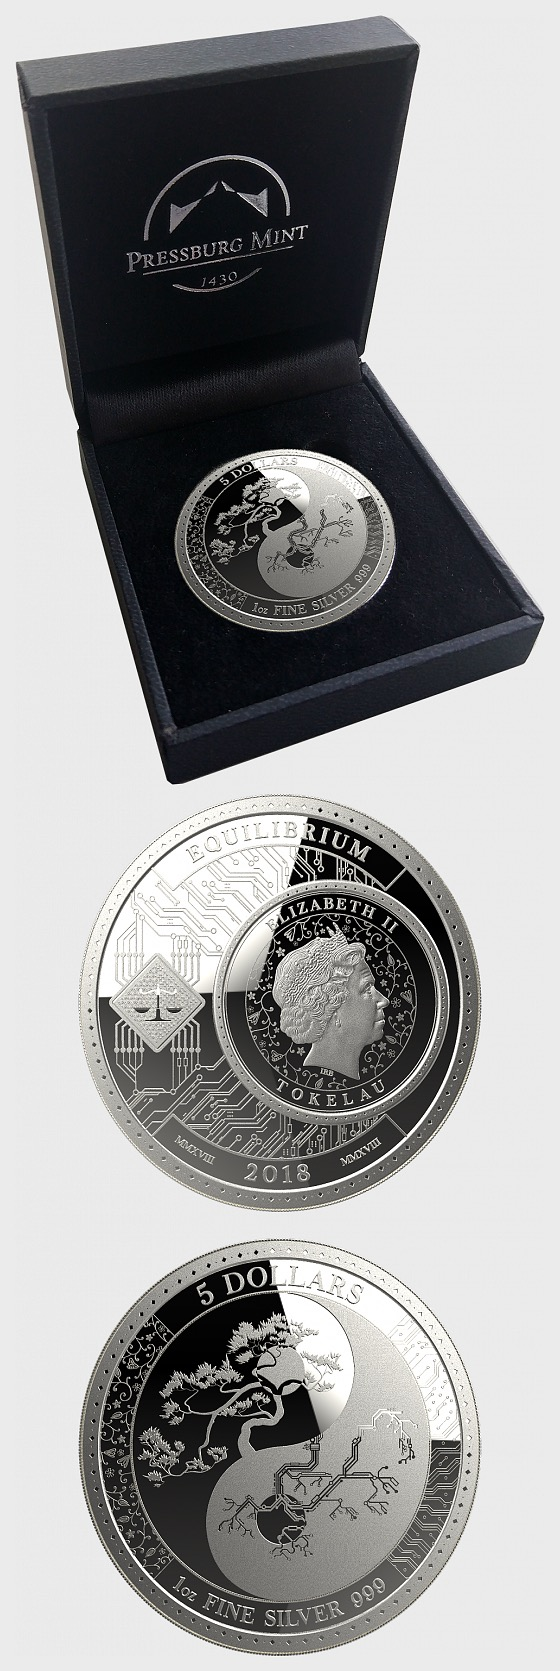 Equilibrium - Silver Coin - Brilliant Uncirculated - Gift Box - Silver Coin